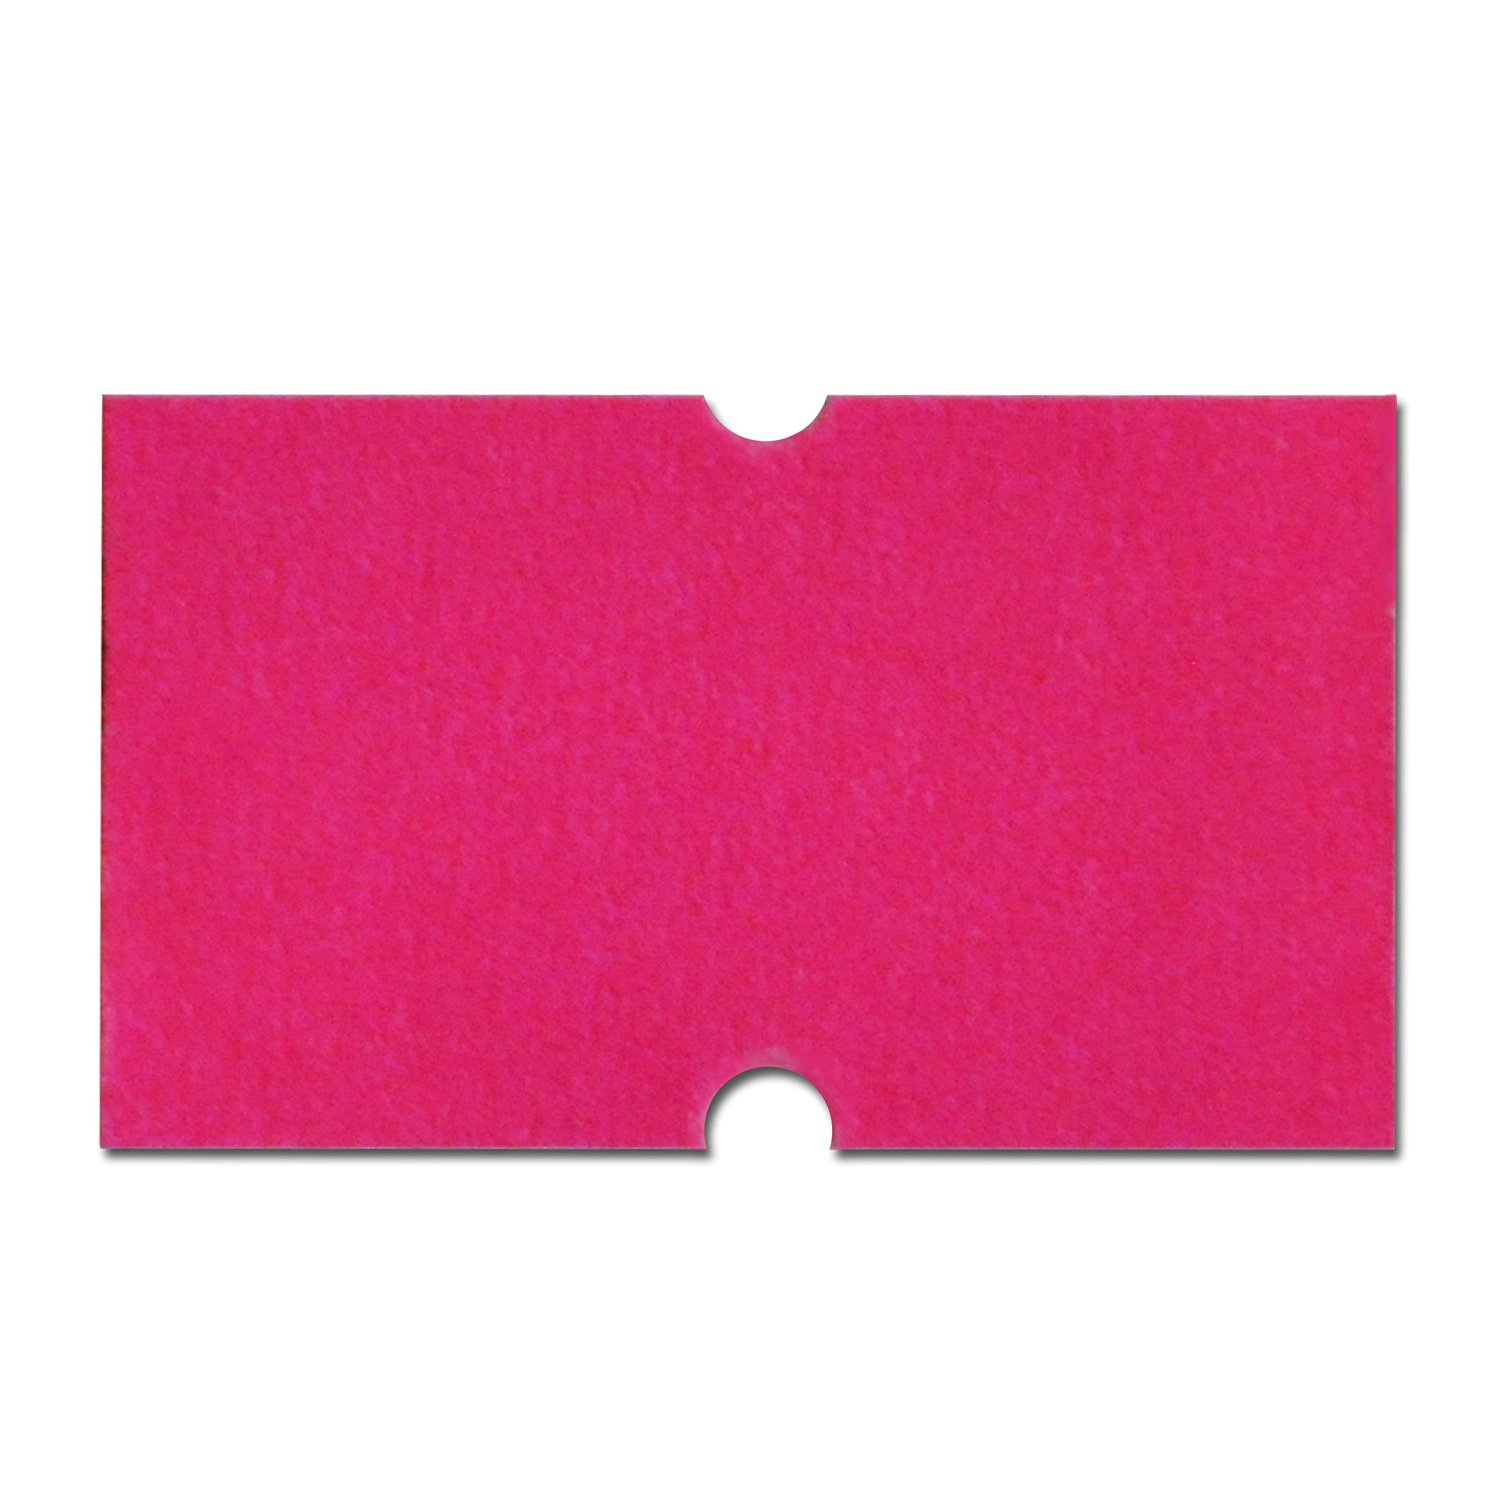 Price Gun Pricing Labels Pink 22 x 12mm (CT1 Punch Hole)